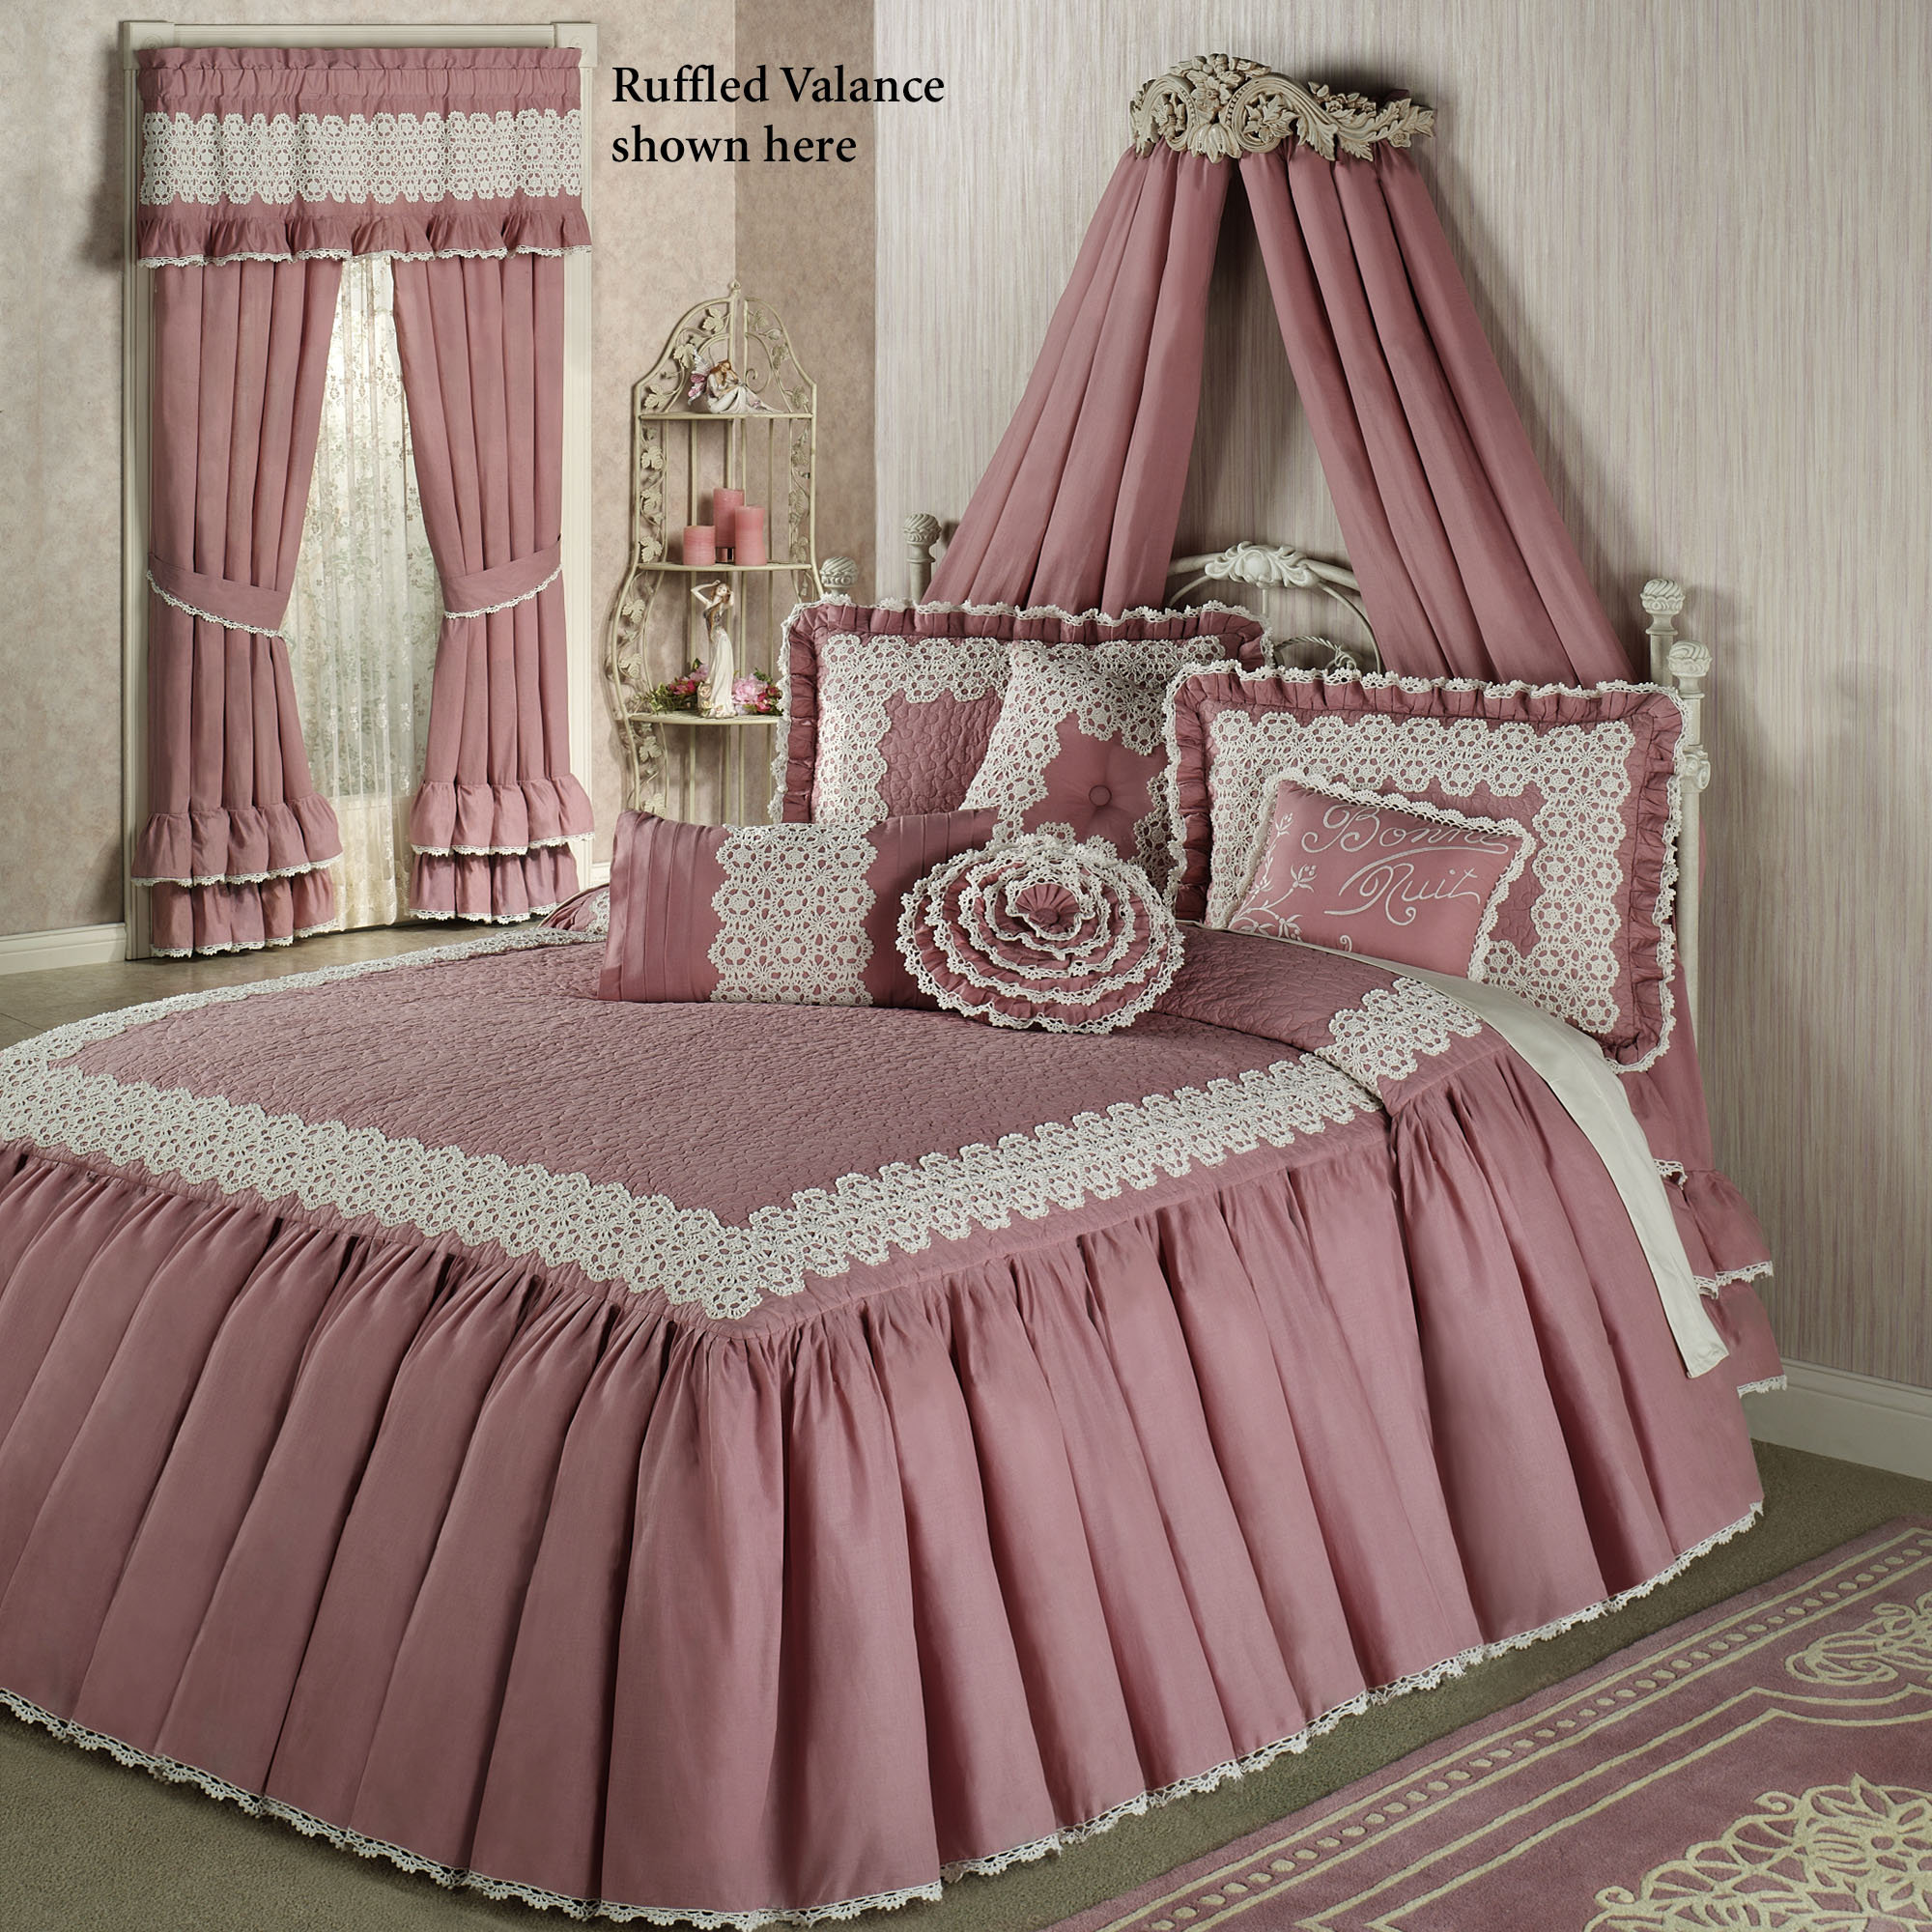 lovely laura ashley bedding in pink with pillow and matching curtain for bedroom decor ideas